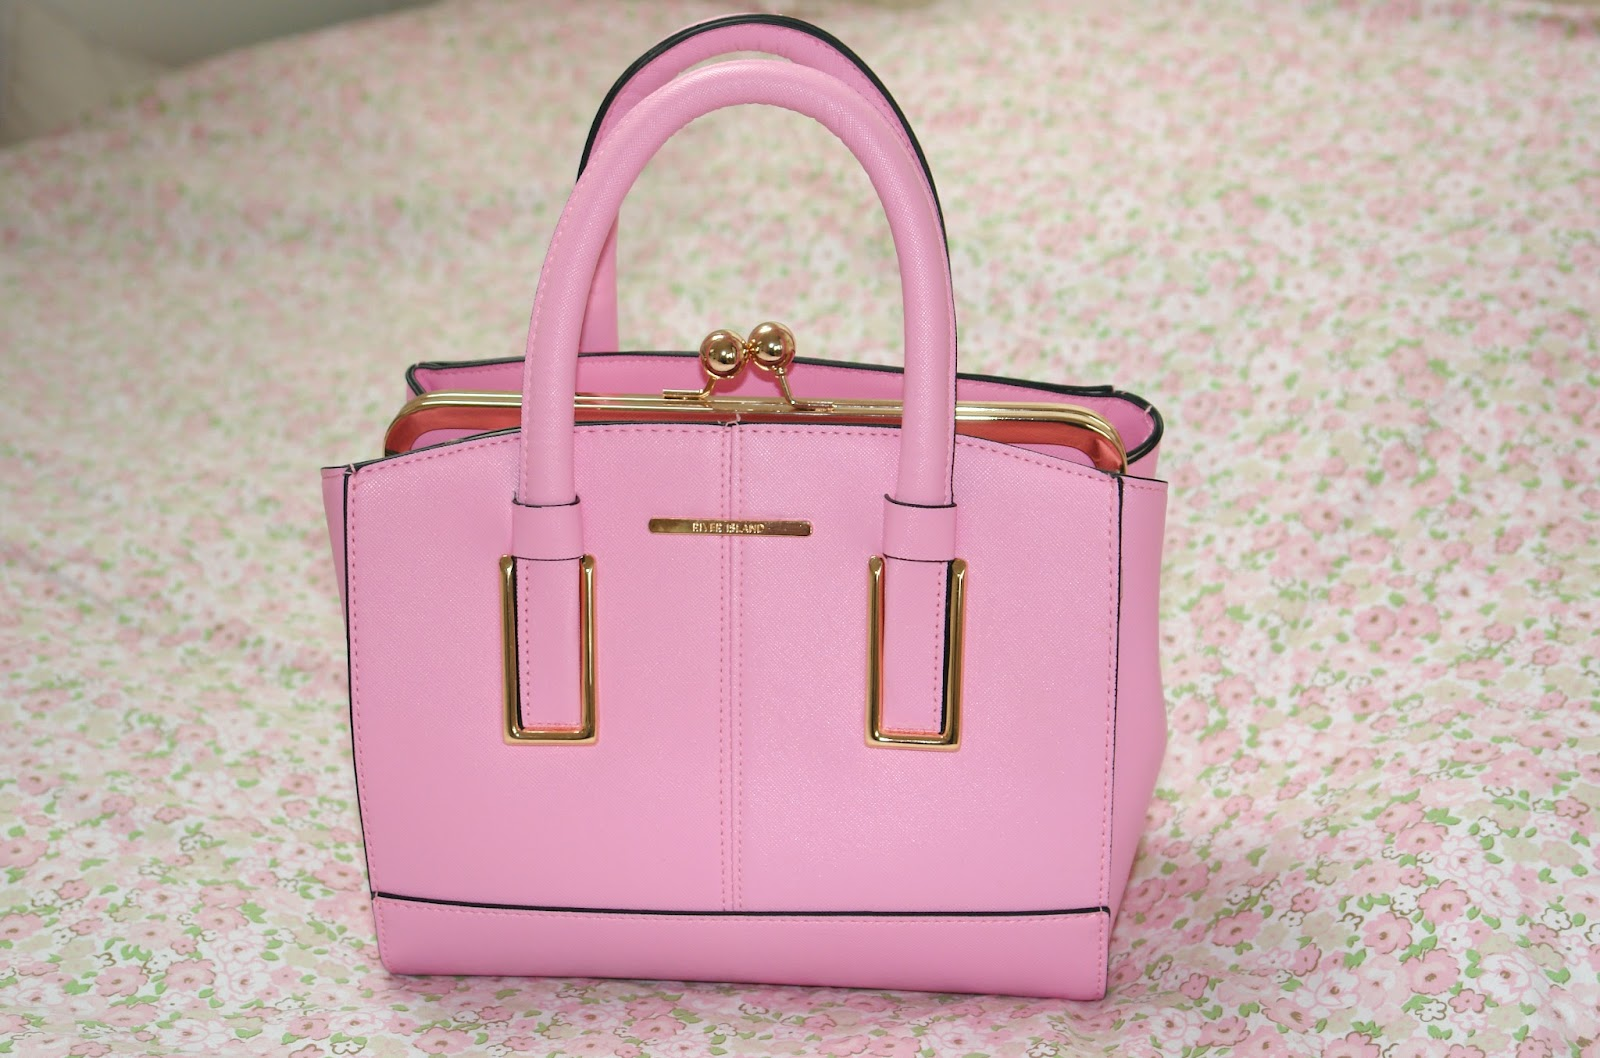 River Island Light Pink Mini Structured Tote Bag, review, summer, 2014, S/S, spring, bags, pink, River Island, pink handbag, fashion, blogger, UK blogger, top UK blogger